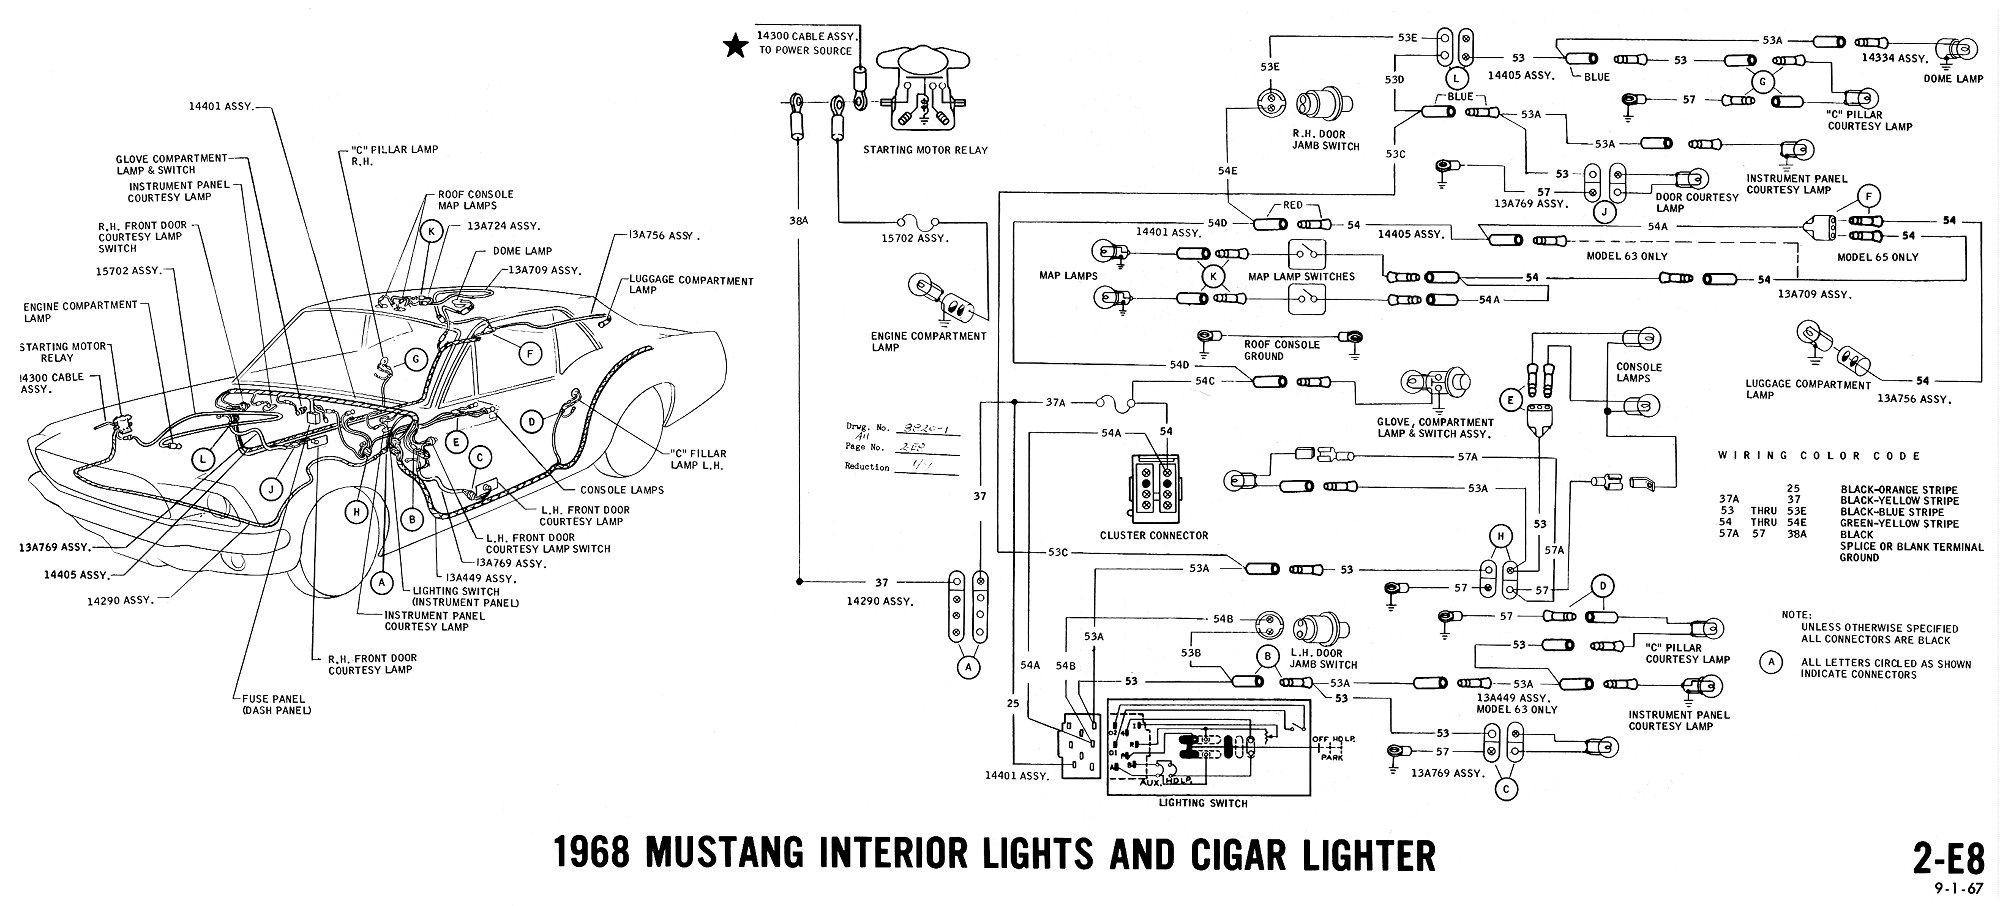 1968 Mustang Wiring Diagrams Evolving Software Diagram 2 Switches Harness Cigar Lighter Interior Lights